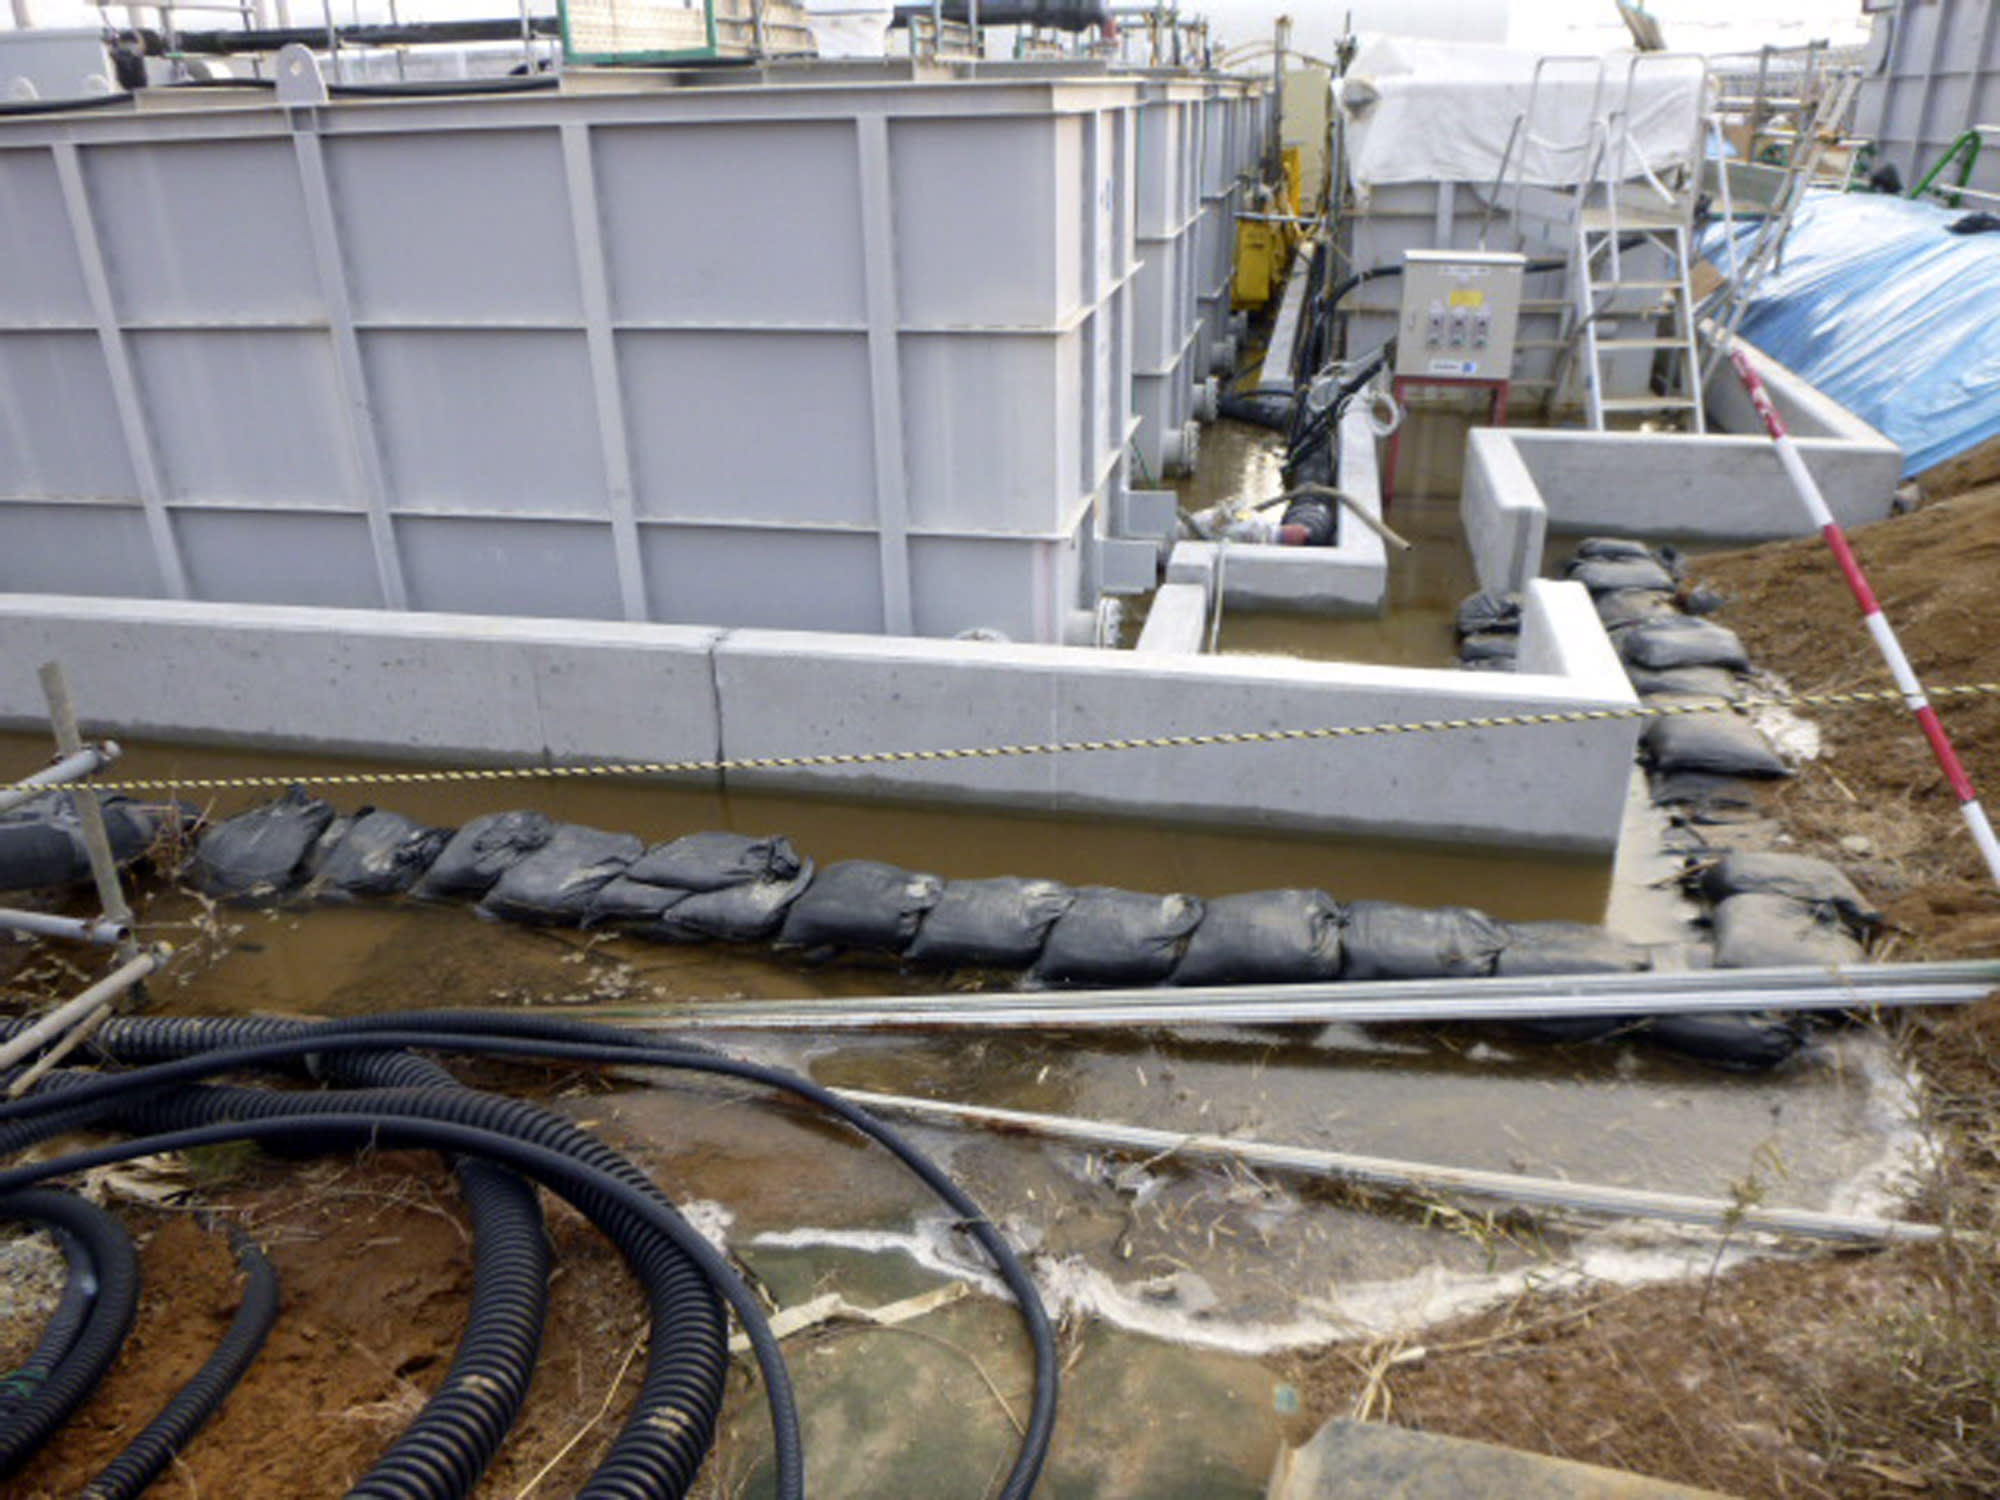 This photo released by Tokyo Electric Power Co. (TEPCO) shows radioactive water leaked from a tank at Fukushima Dai-ichi nuclear power plant in Okuma, Fukushima Prefecture Thursday, Feb. 20, 2014. Highly radioactive water has overflowed from a storage tank, but the operator says it did not reach the Pacific Ocean. The operator, TEPCO said Thursday that the leak involved partially treated water from early in the crisis, meaning it was more toxic than previous leaks. Three reactors melted at the Fukushima Dai-ichi plant following the 2011 earthquake and tsunami, with radioactive water partially recycled and stored in more than 1,000 tanks. (AP Photo/Tokyo Electric Power Co. )(AP Photo/Tokyo Electric Power Co. )